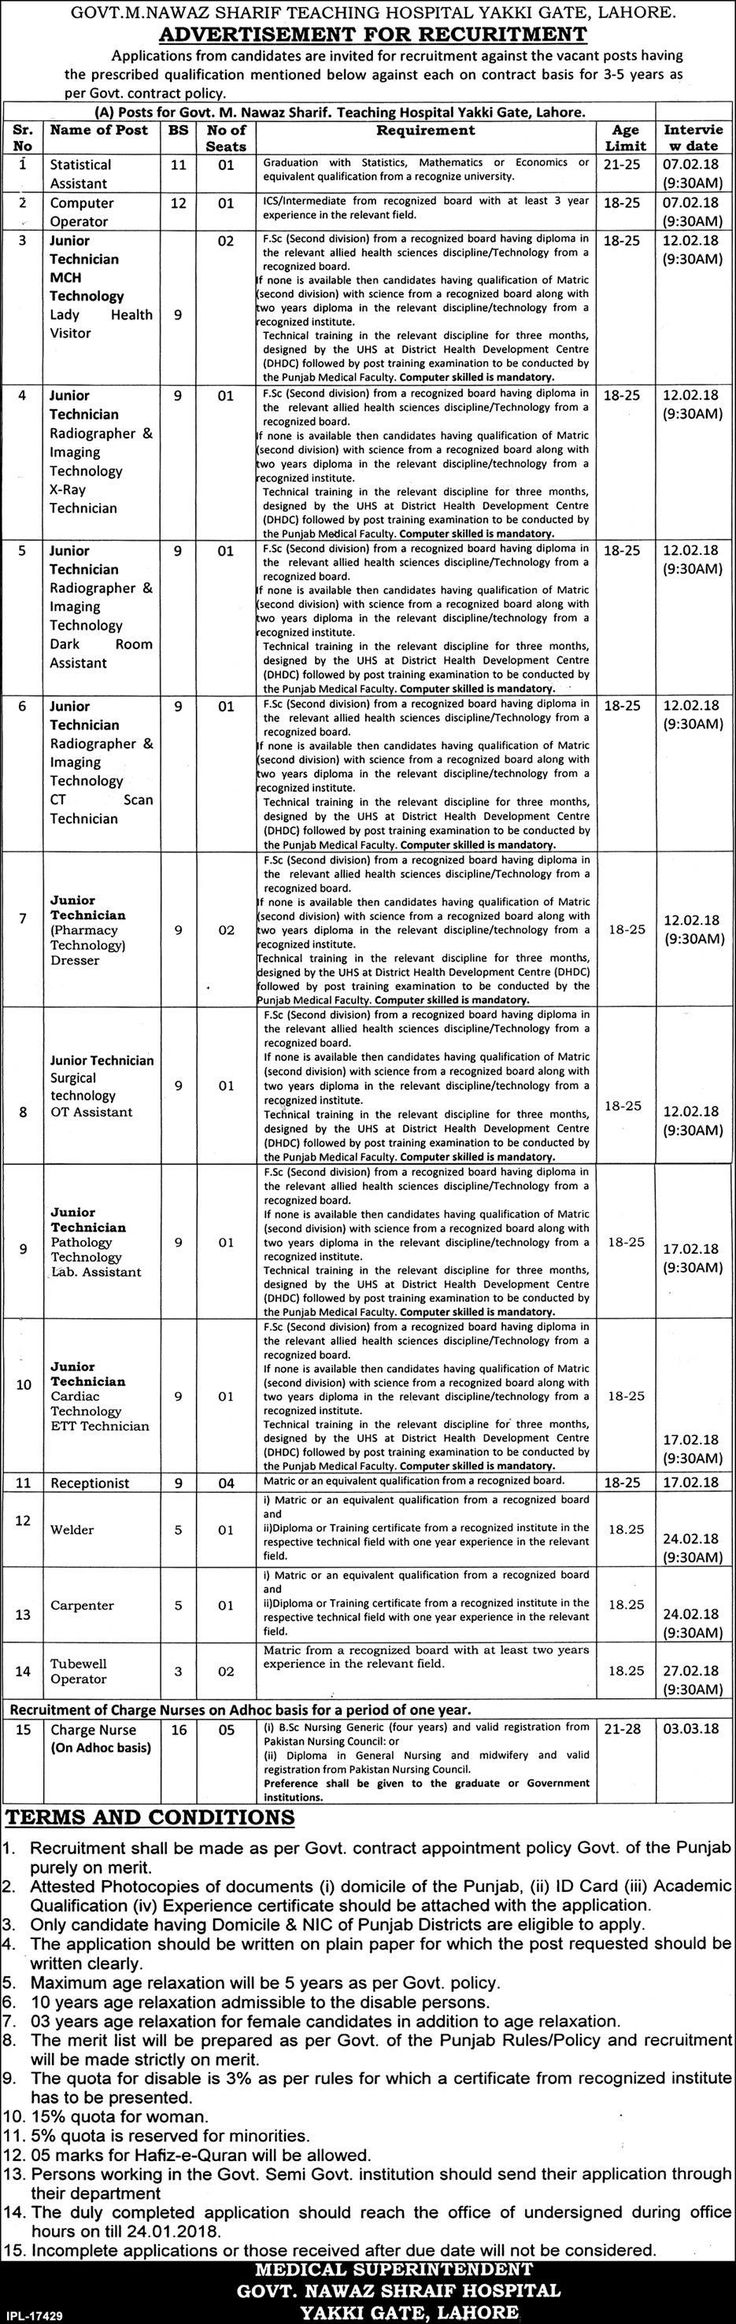 Government Jobs M Nawaz Sharif Teaching Hospital Yakki Gate, Lahore Advertisement for Recuritment  GOVT.M.NAWAZ SHARIF TEACHING HOSPITAL YAKKI GATE, LAHORE.  ADVERTISEMENT FOR RECURITMENT  Applications from candidates are invited for recruitment against the vacant posts having the prescribed qualification mentioned below against each on contract basis for 3-5 years as per Govt. contract policy.   #Announcement #Application #Authority #breakingnews #Bureau #career #Co